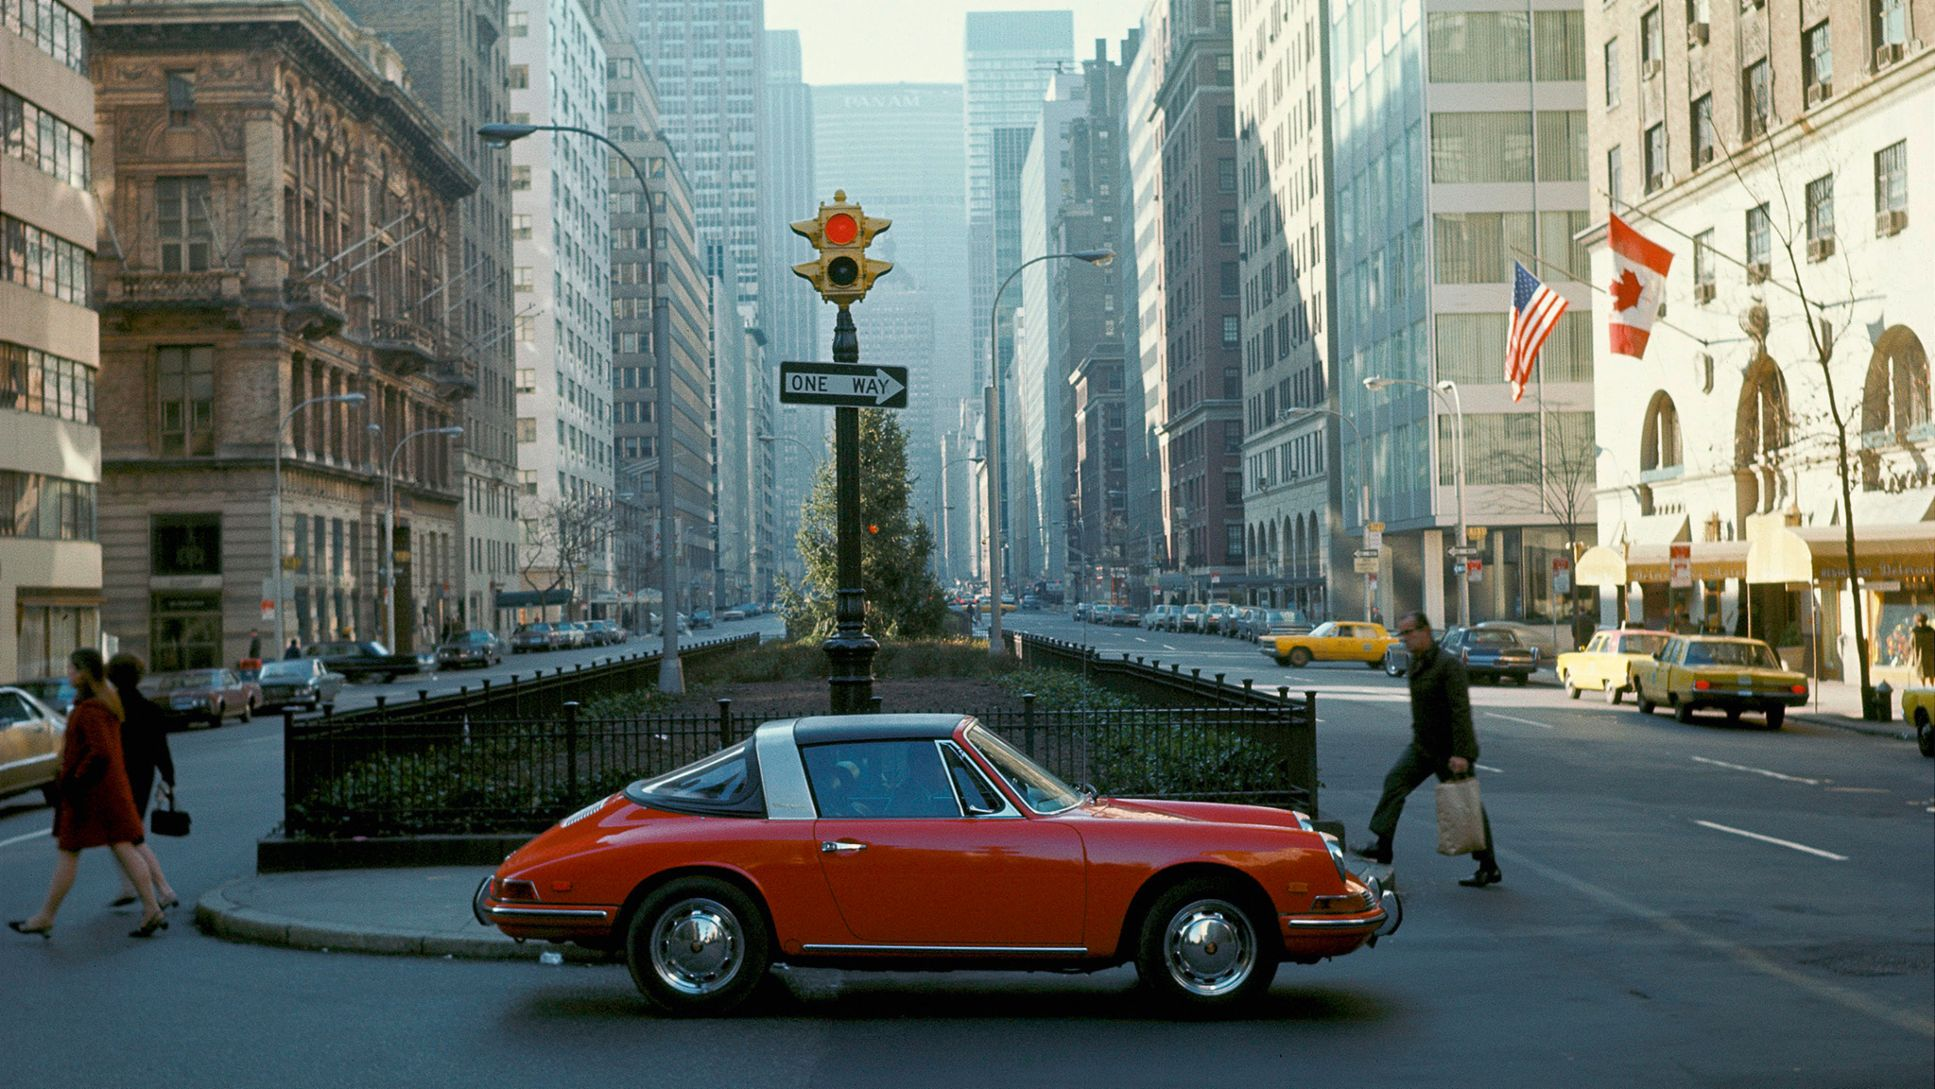 Porsche 912 Targa, New York City, Park Avenue, Porsche AG